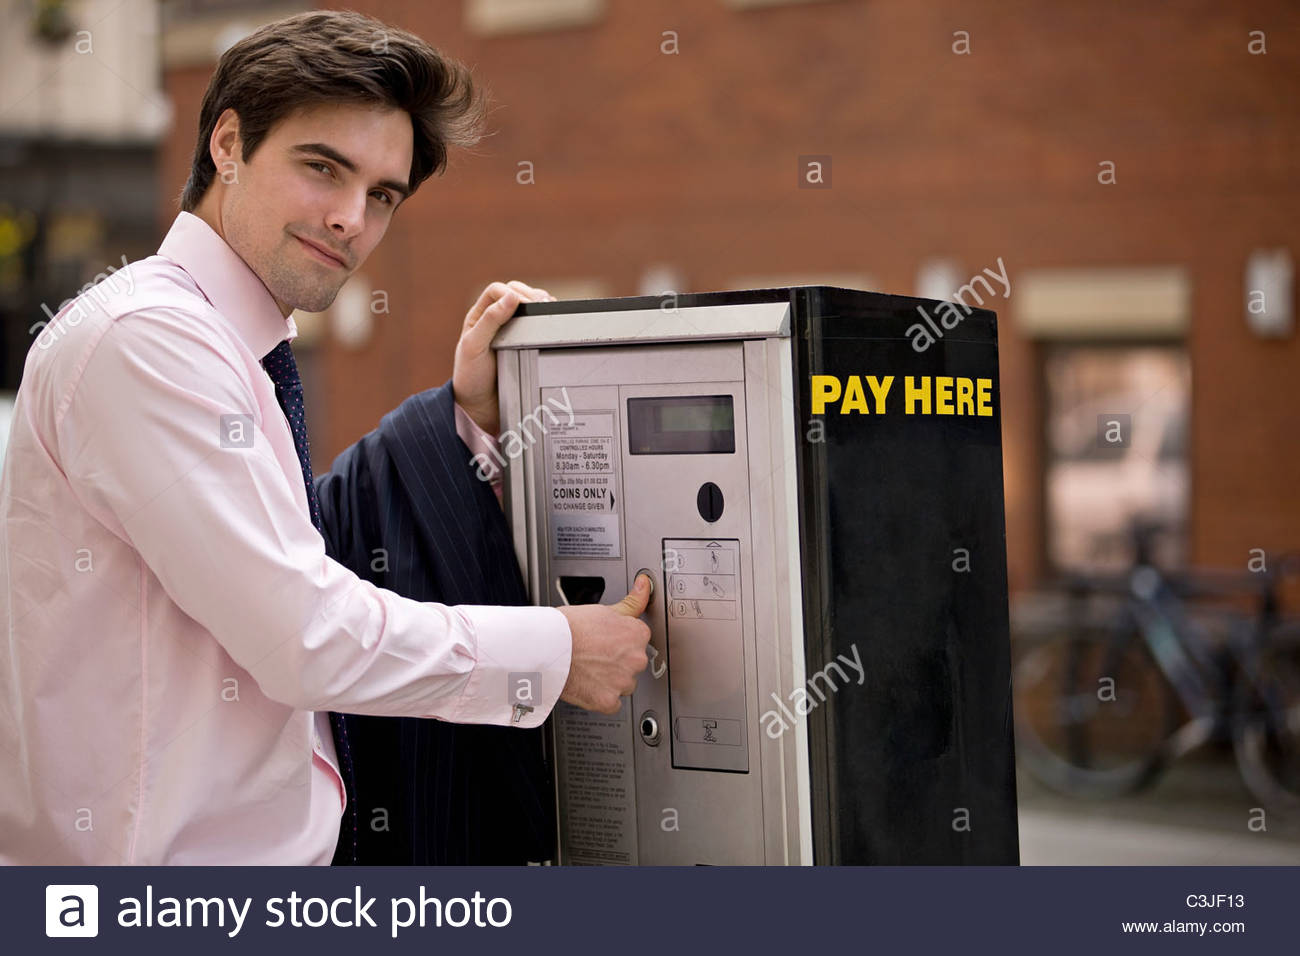 A businessman buying a ticket from a parking meter - Stock Image